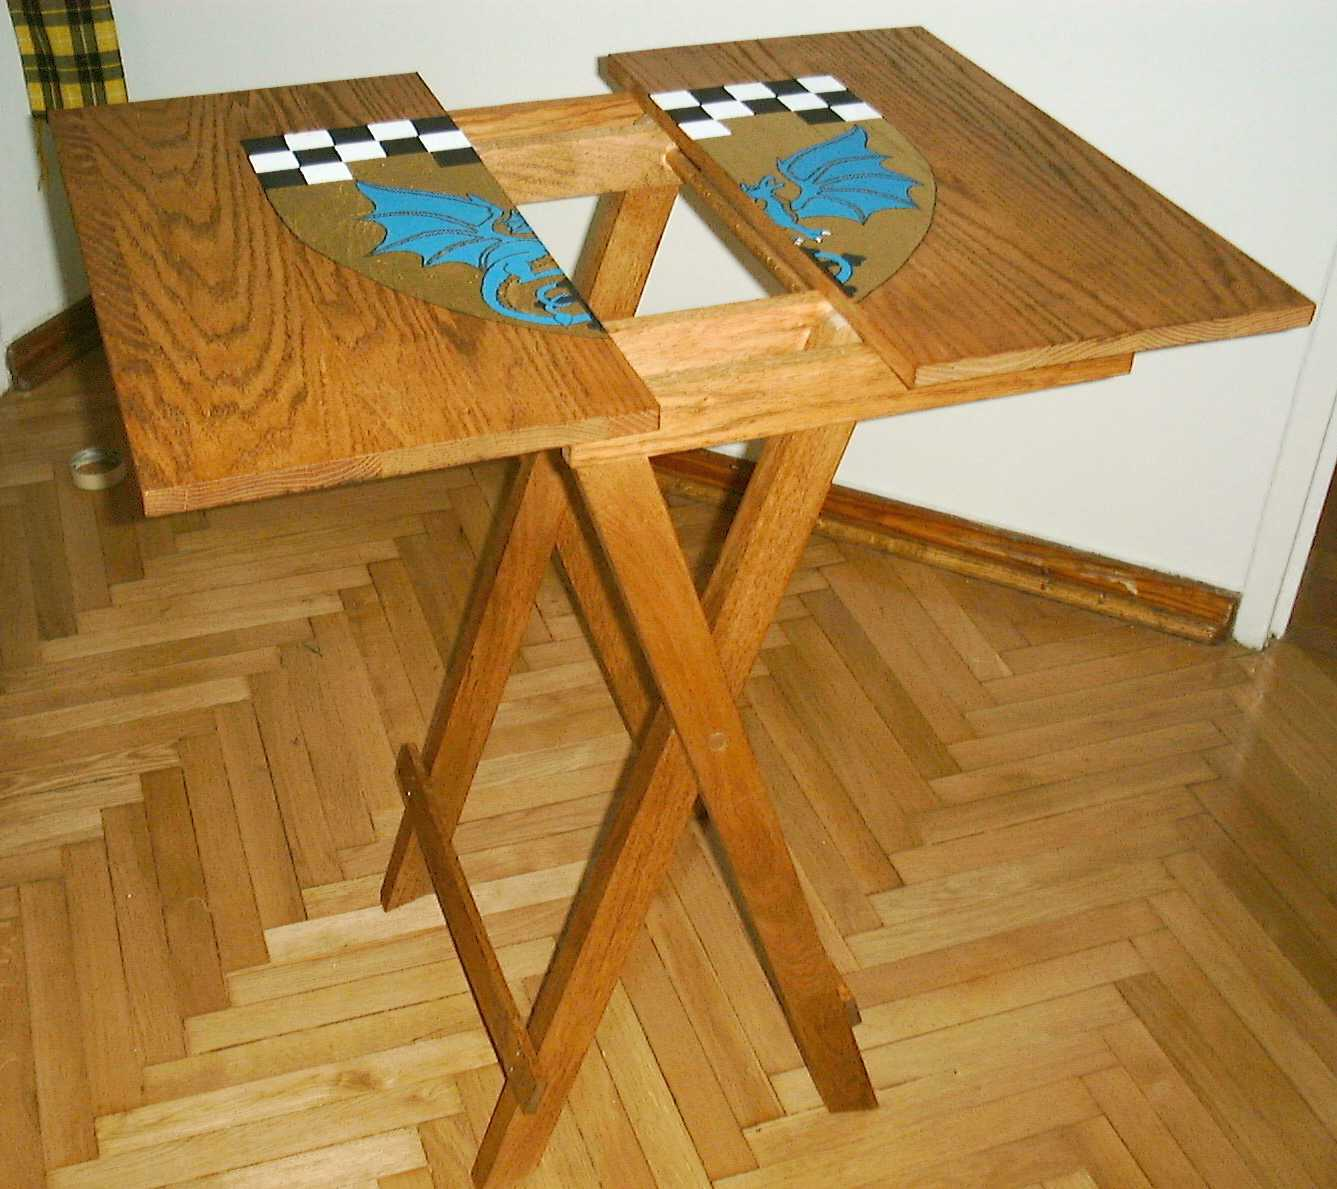 The table, spread apart showing the table top rests.